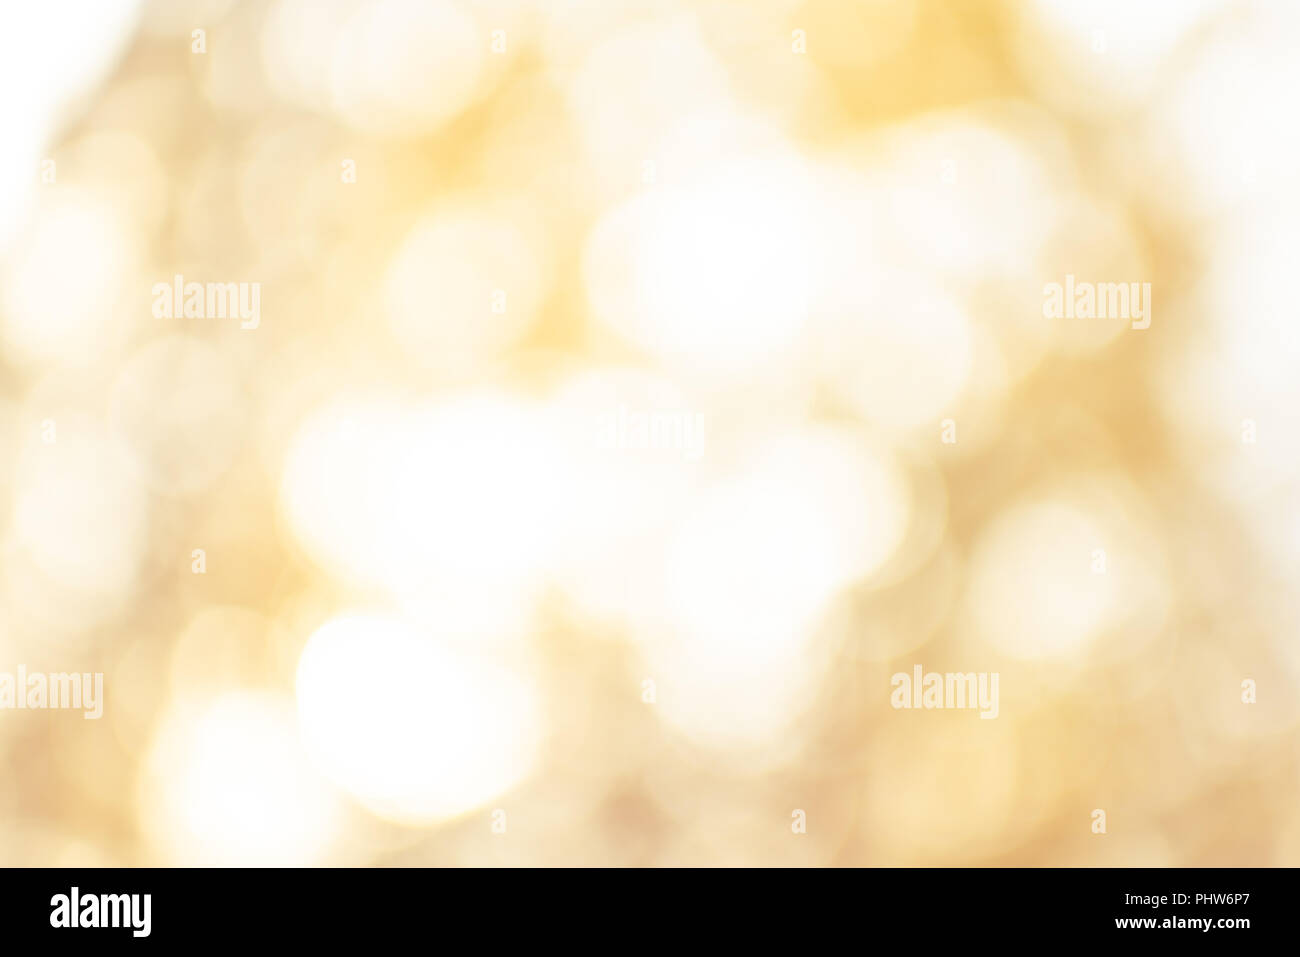 Abstract unfocused golden background for design, shimmering. Theme of magical Autumn - Stock Image